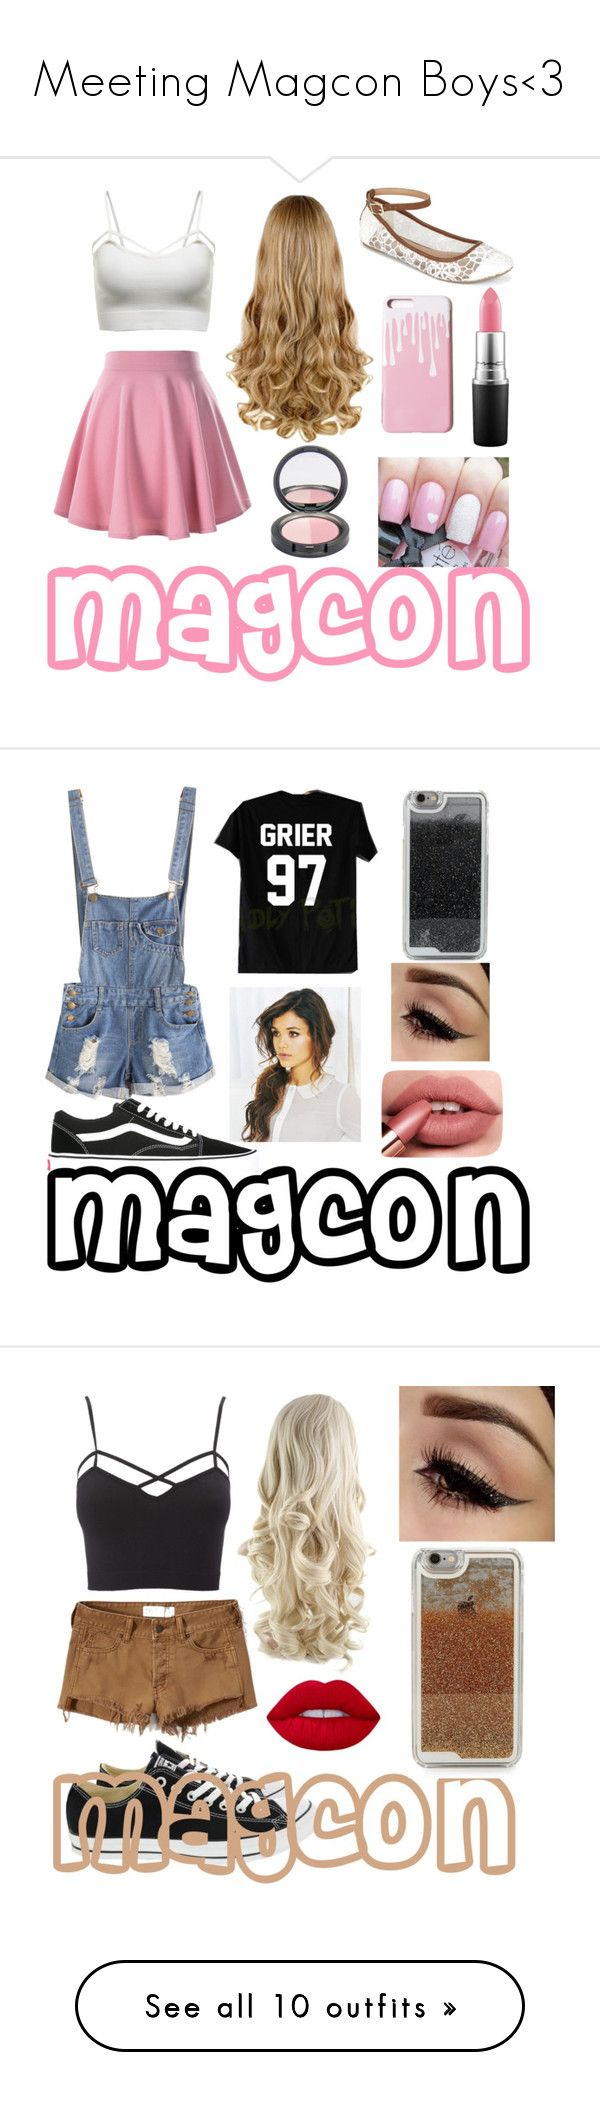 """Meeting Magcon Boys<3"" by gisele1164 ❤ liked on Polyvore featuring Call it SPRING, Vans, LMNT, Abercrombie & Fitch, Charlotte Russe, Converse, plus size clothing, Jimmy Choo, Casetify and Urban Decay"